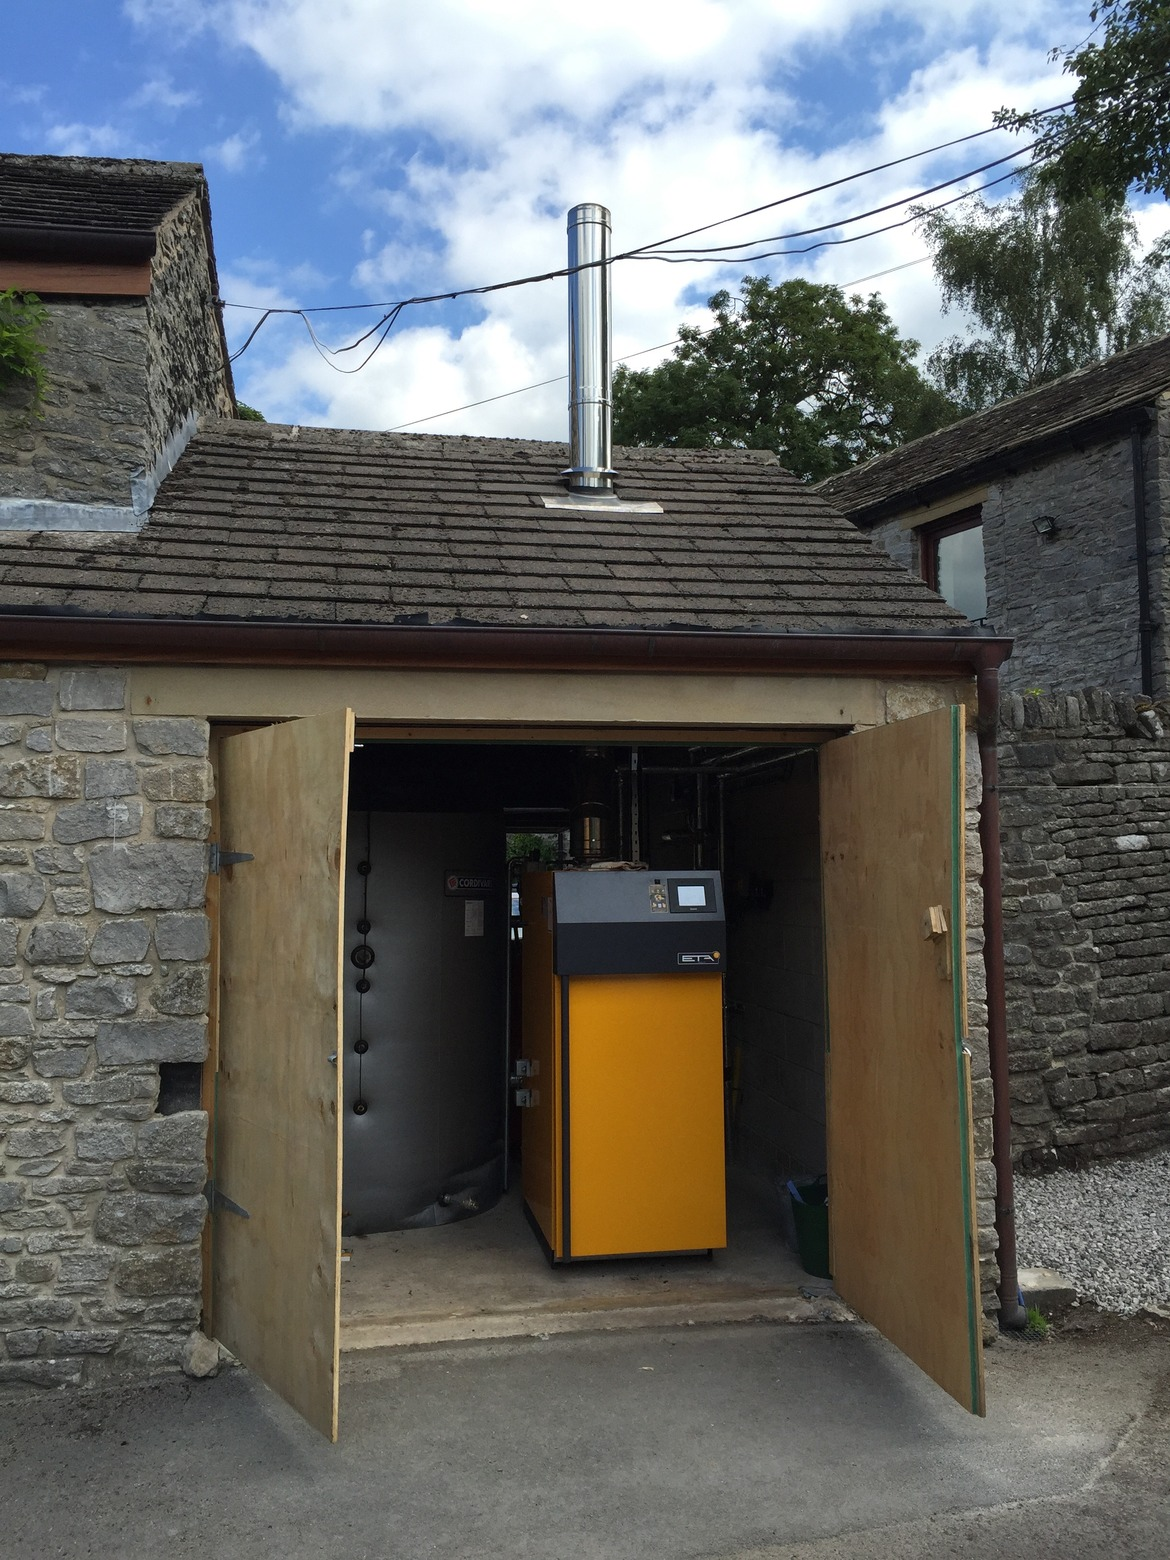 ETA log biomass boiler installed in Derbyshire